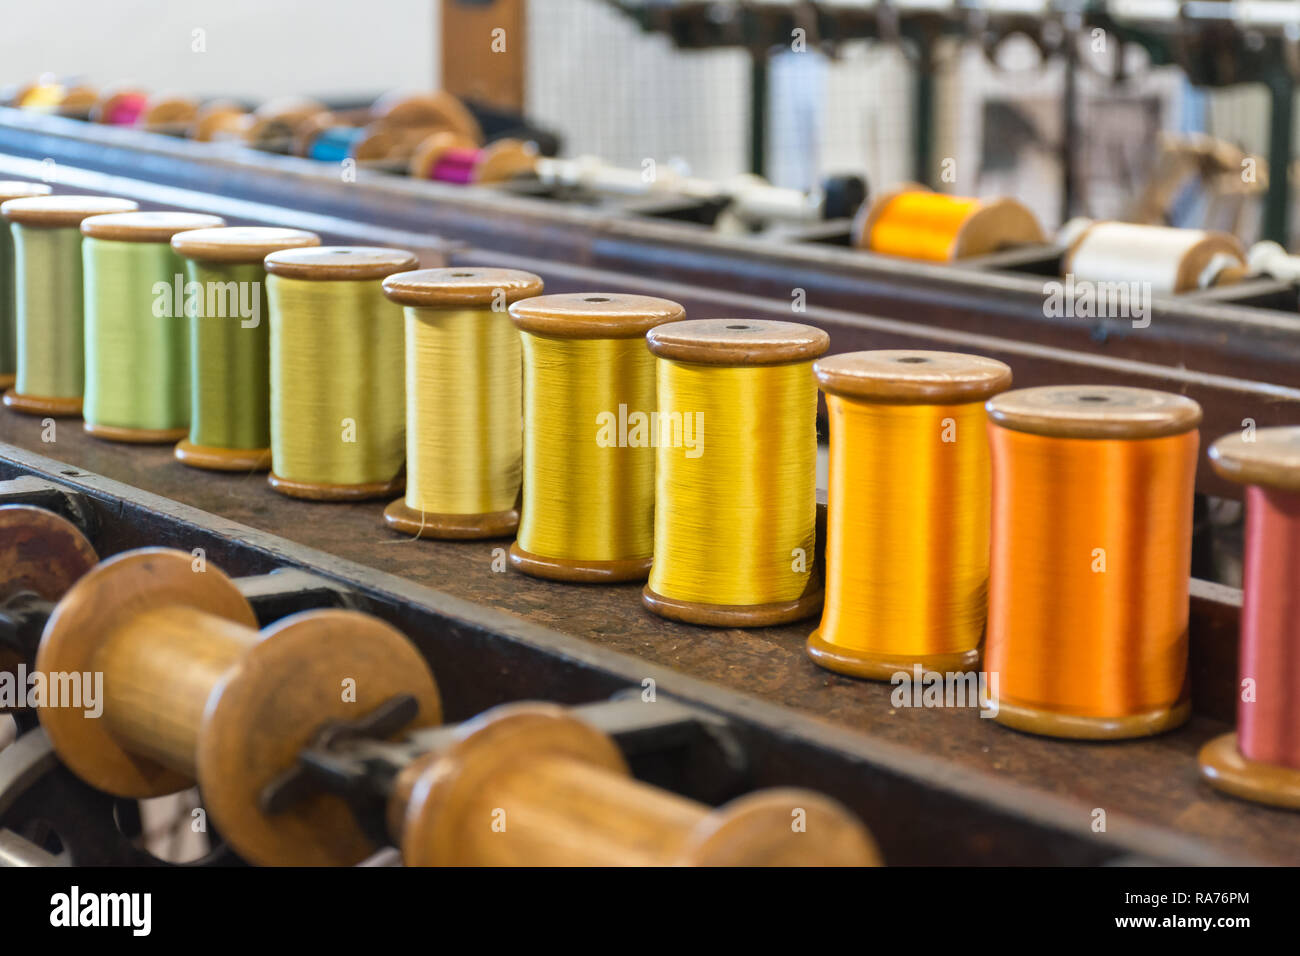 whitchurch-silk-mill-in-hampshire-uk-close-up-of-colourful-silk-yarn-on-bobbins-ready-for-spinning-RA76PM.jpg